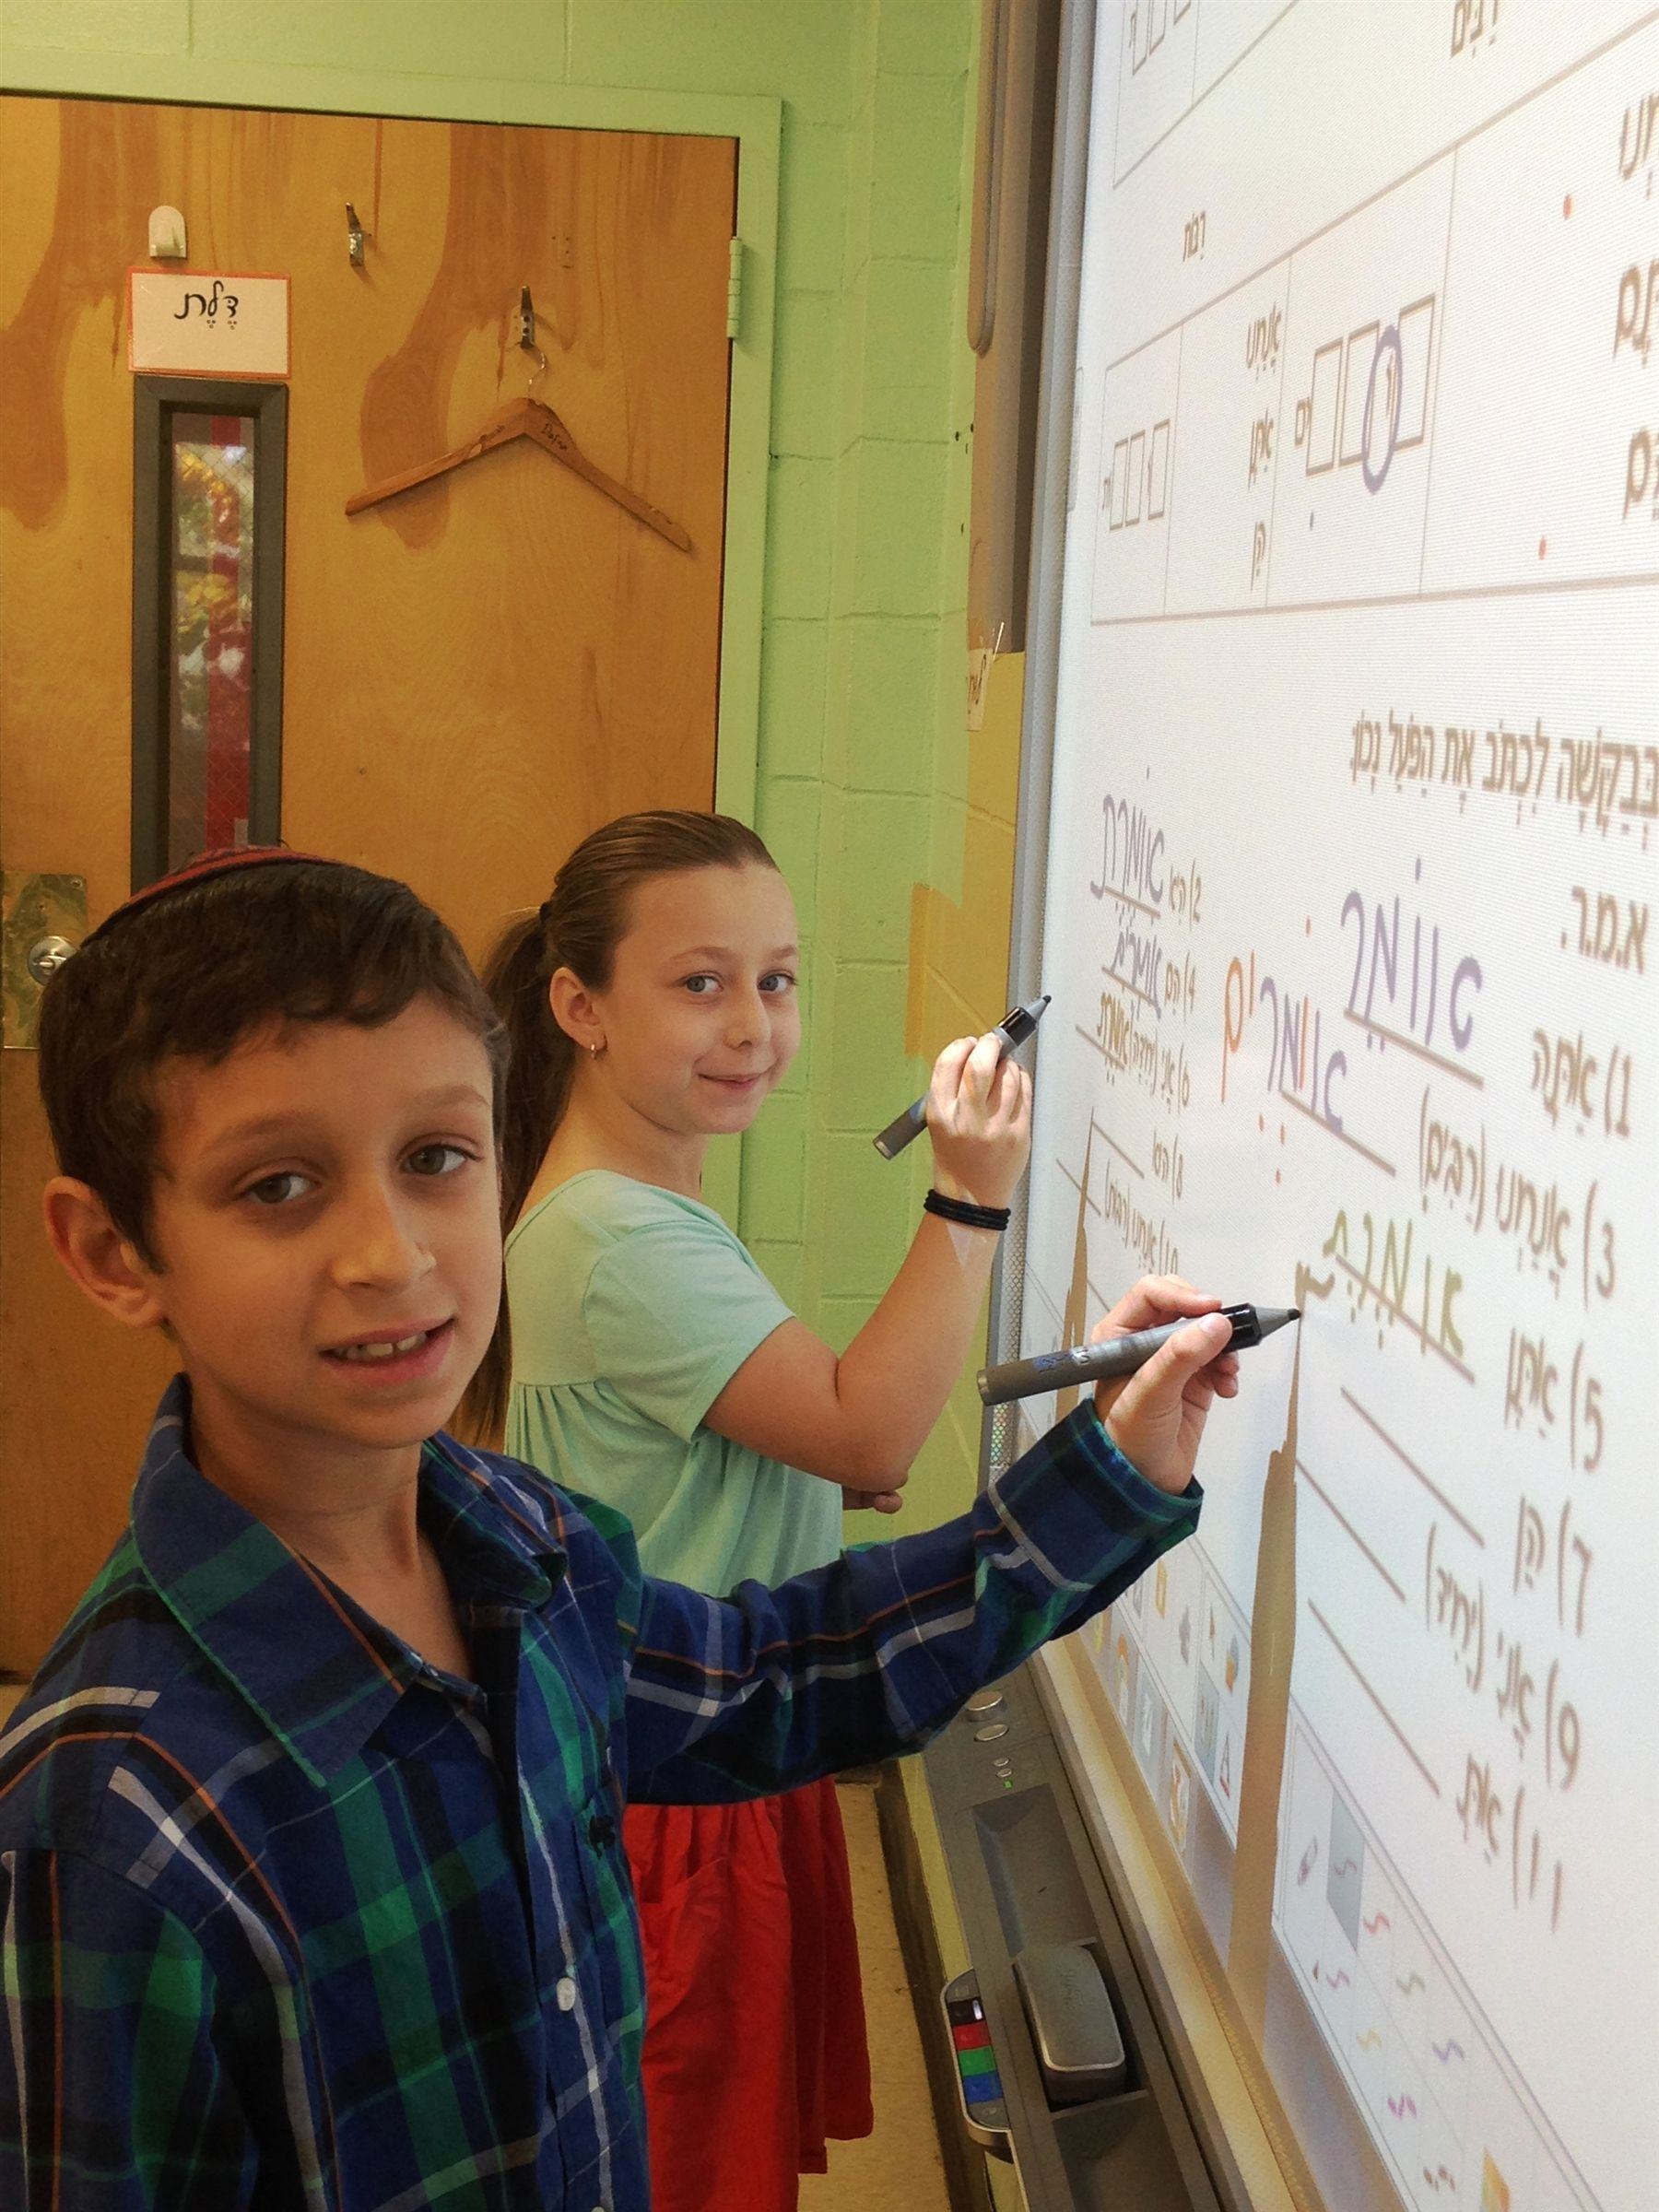 SMART Boards make learning interactive and fun.